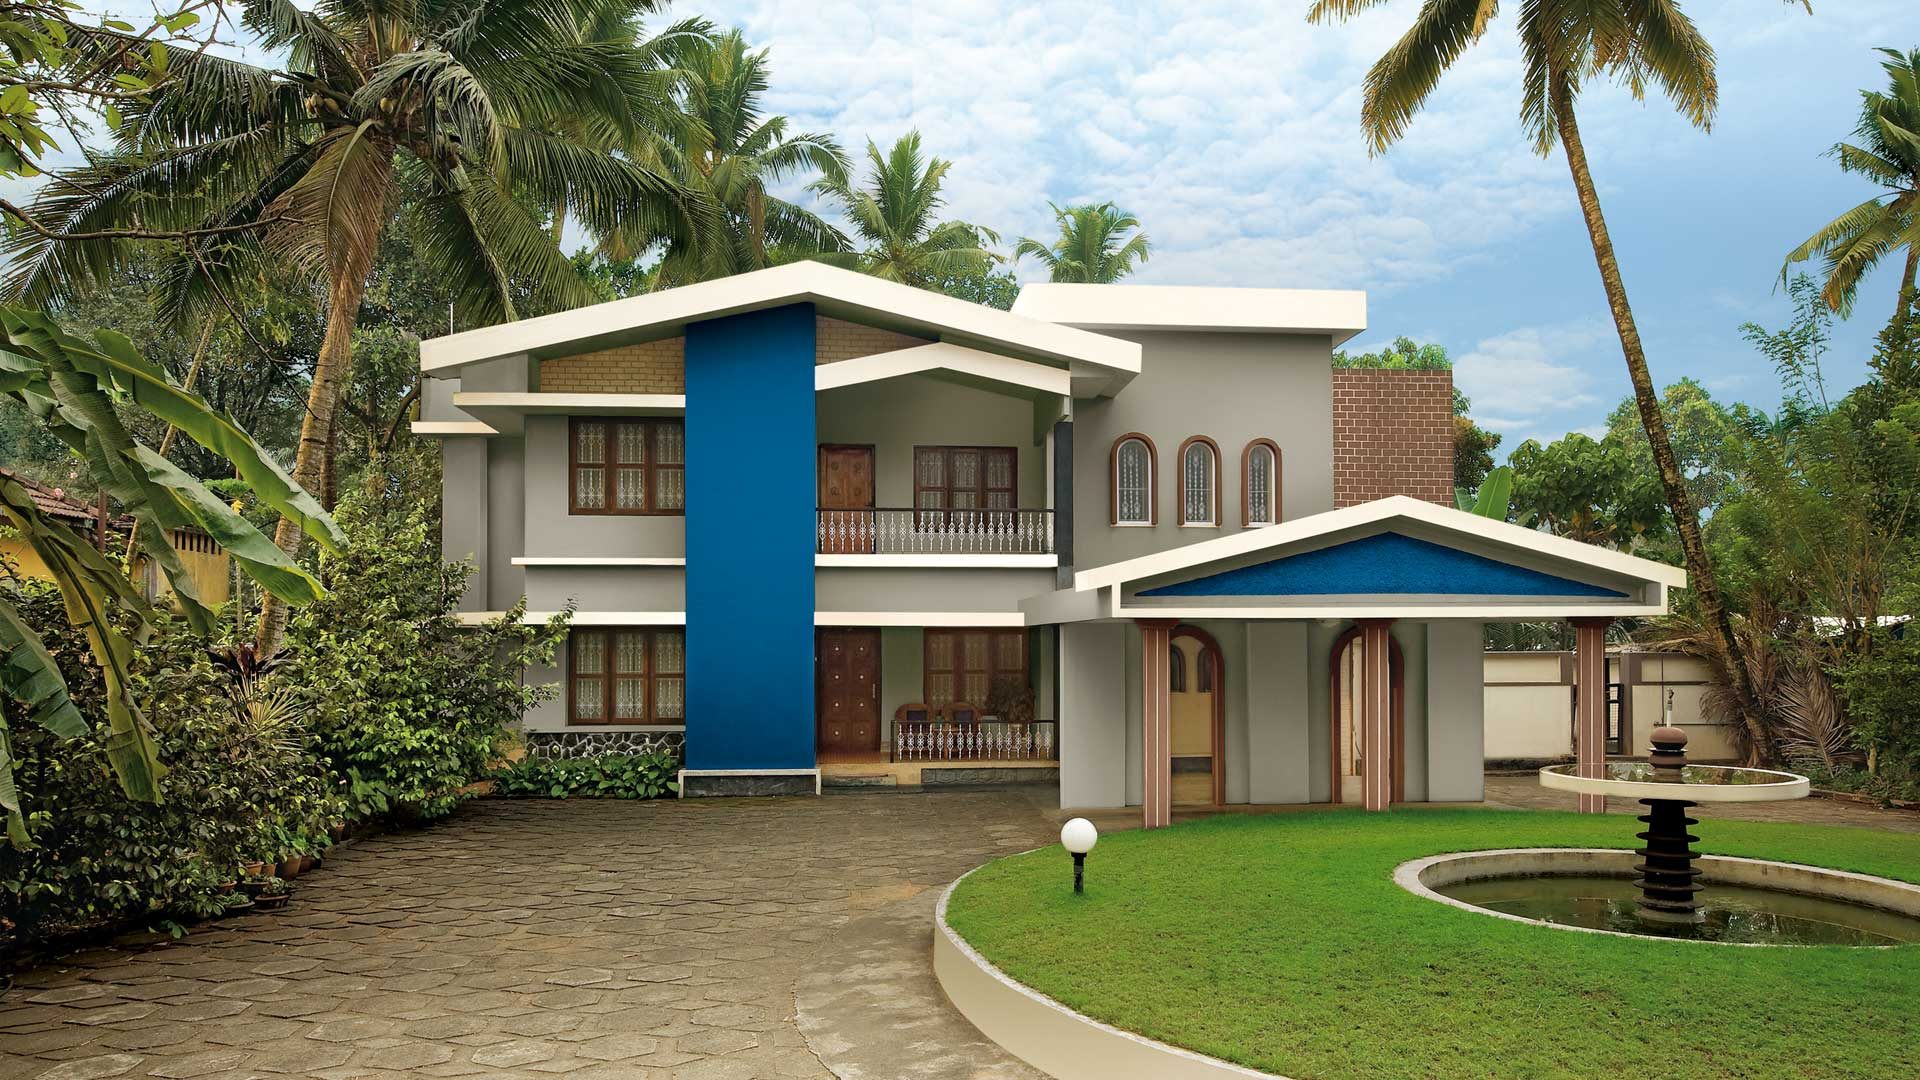 House Color Combinations - House Painting Services in Bangalore